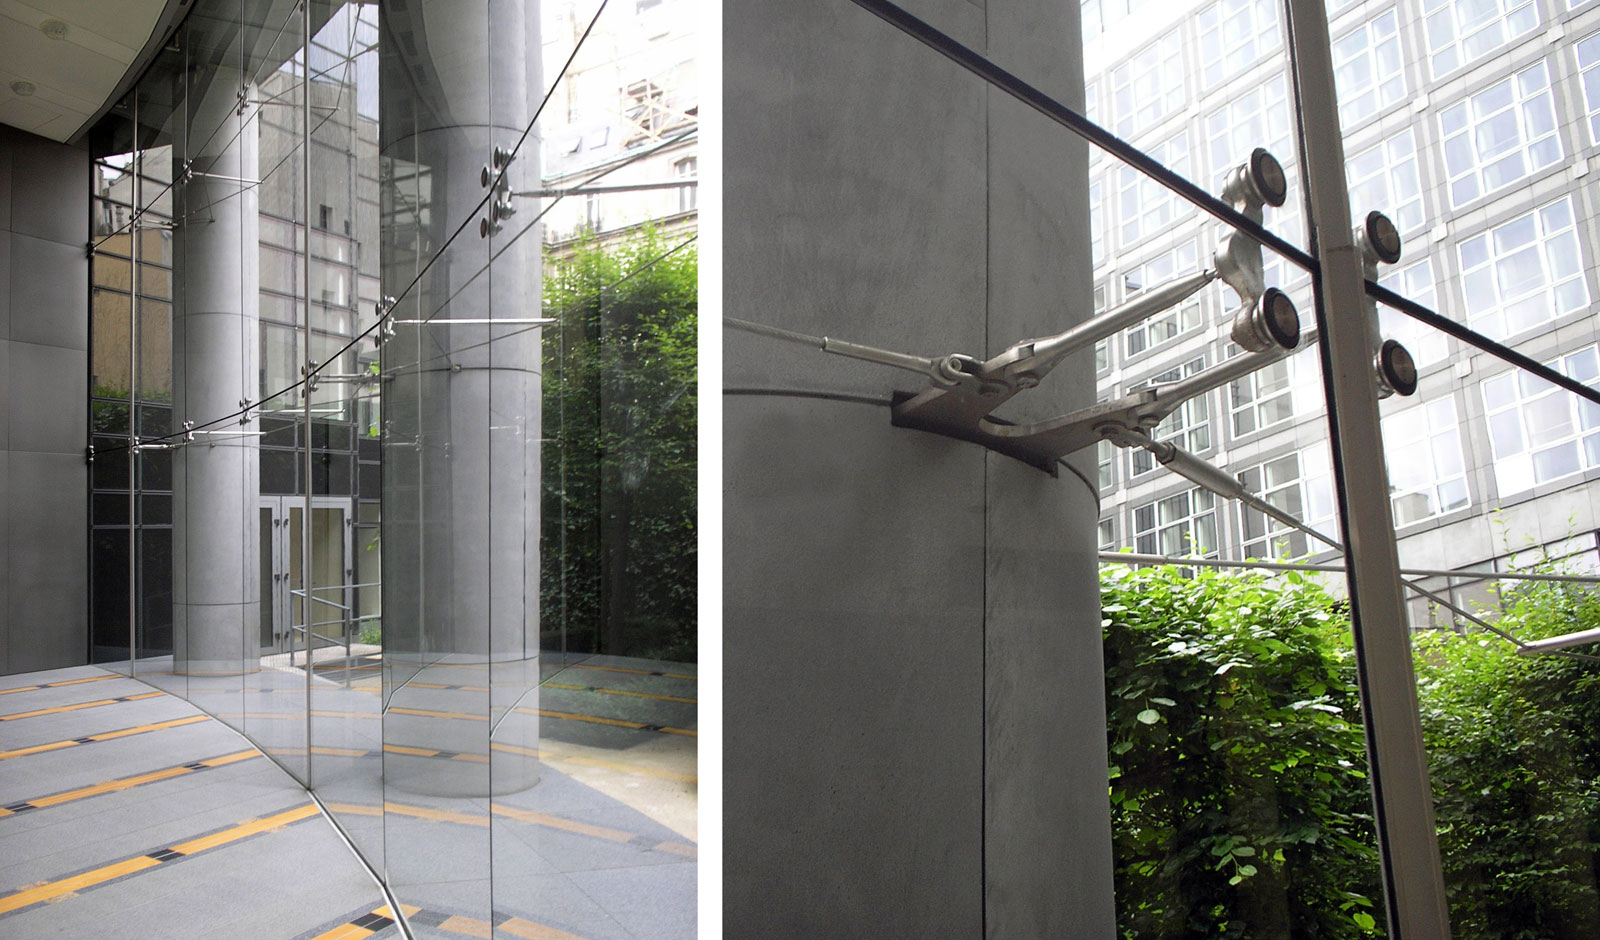 clear glass opens the atrium to a private garden